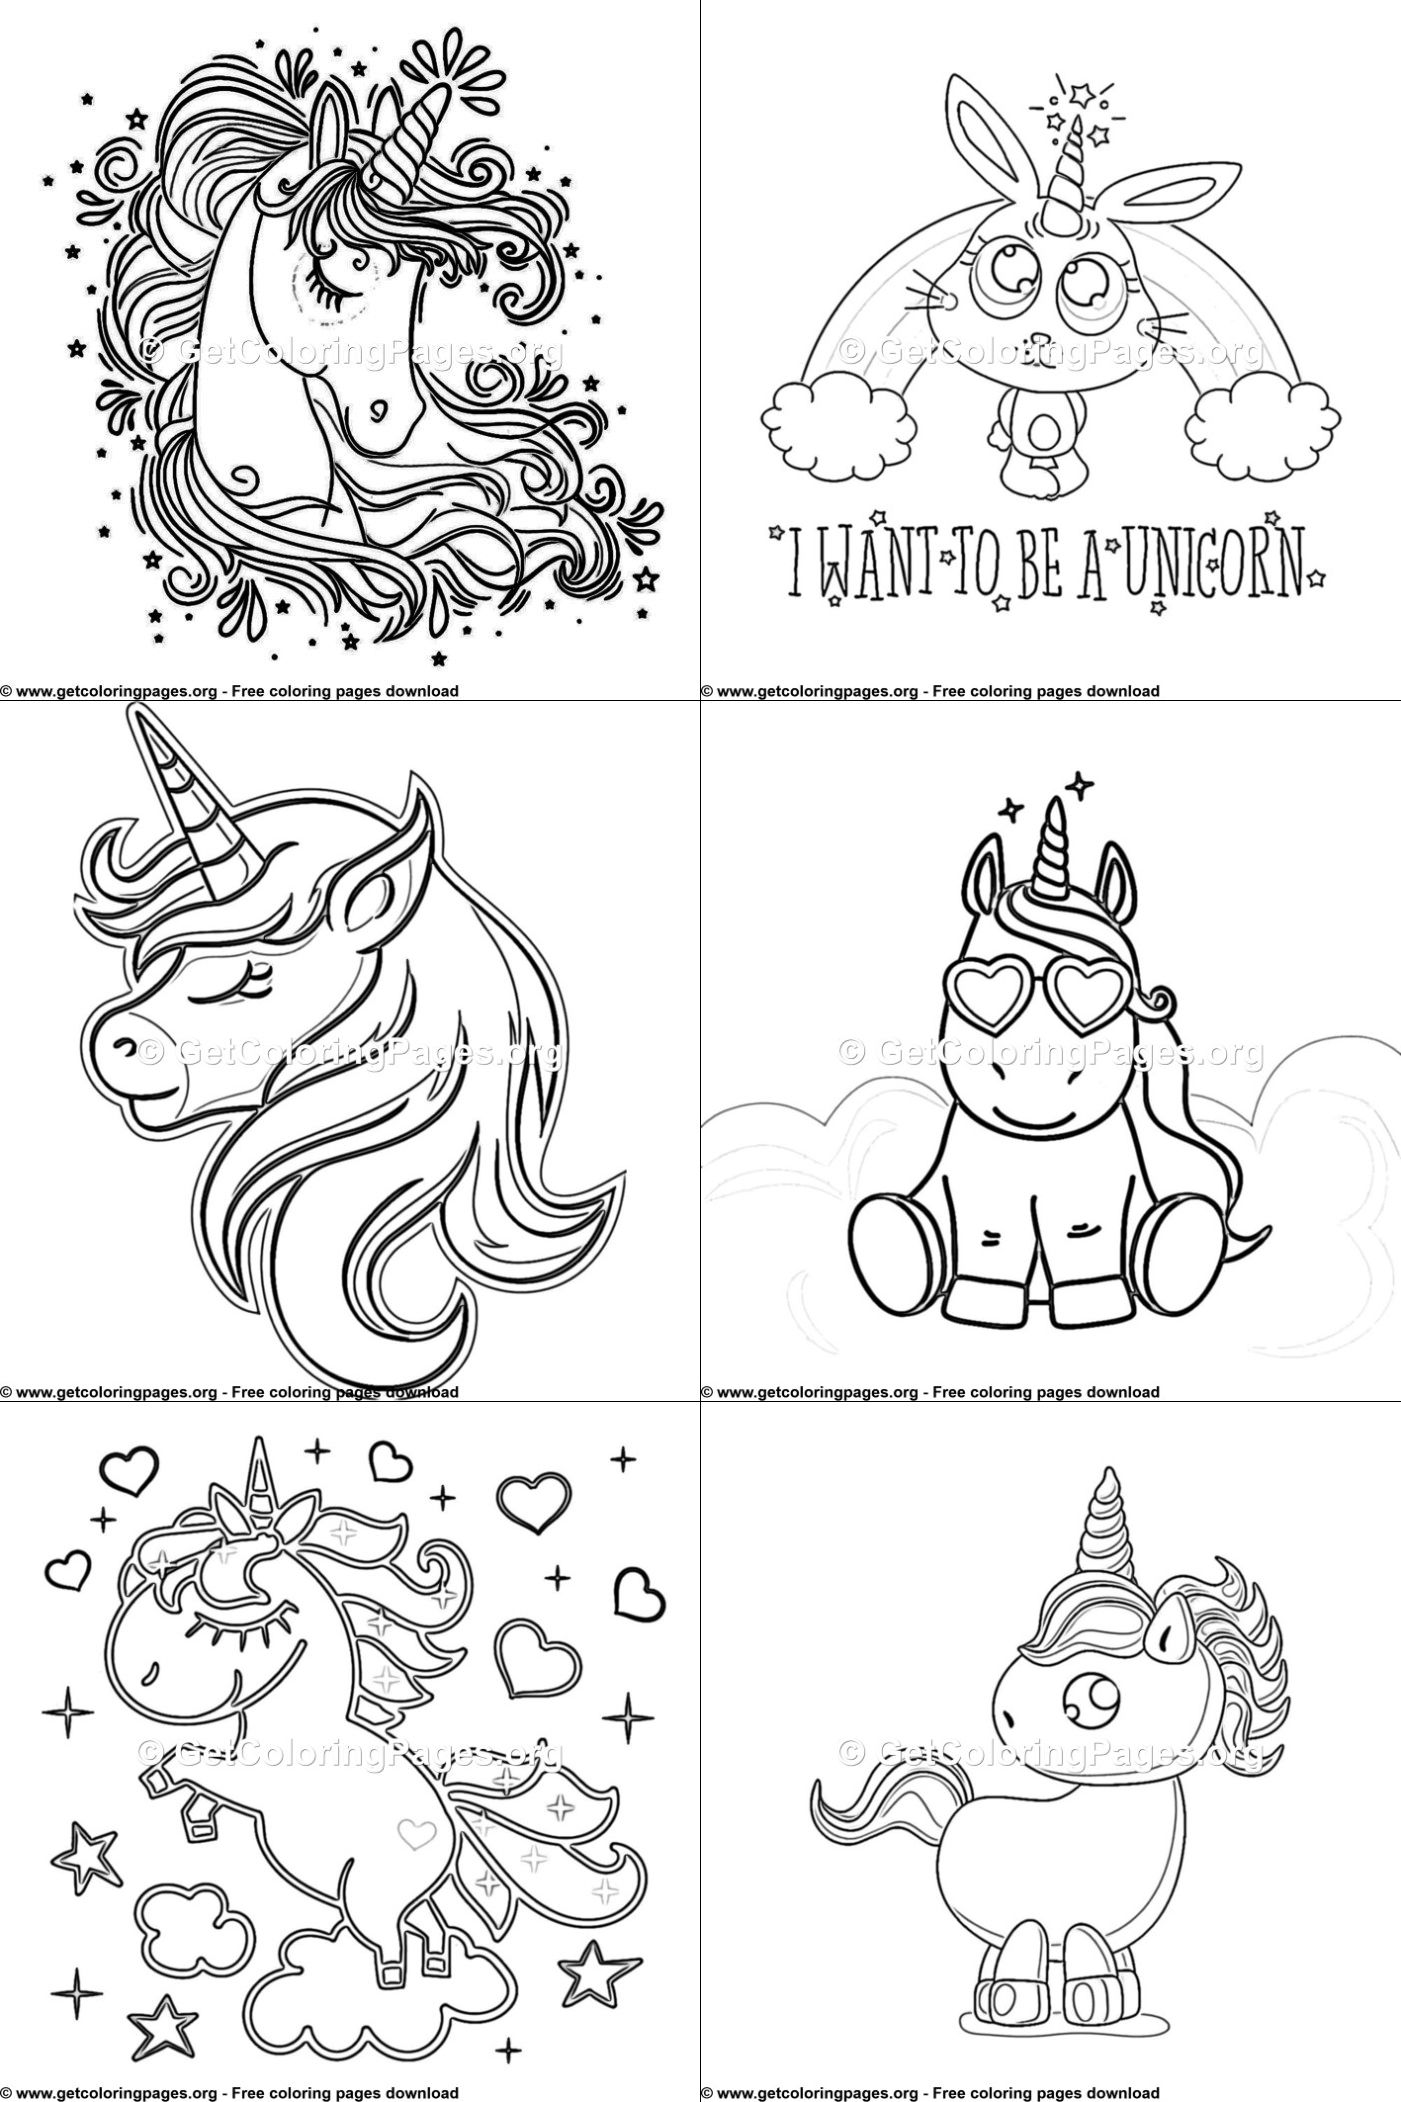 Top 35 Free Printable Unicorn Coloring Pages Online Unicorn Coloring Pages Heart Coloring Pages Animal Coloring Pages